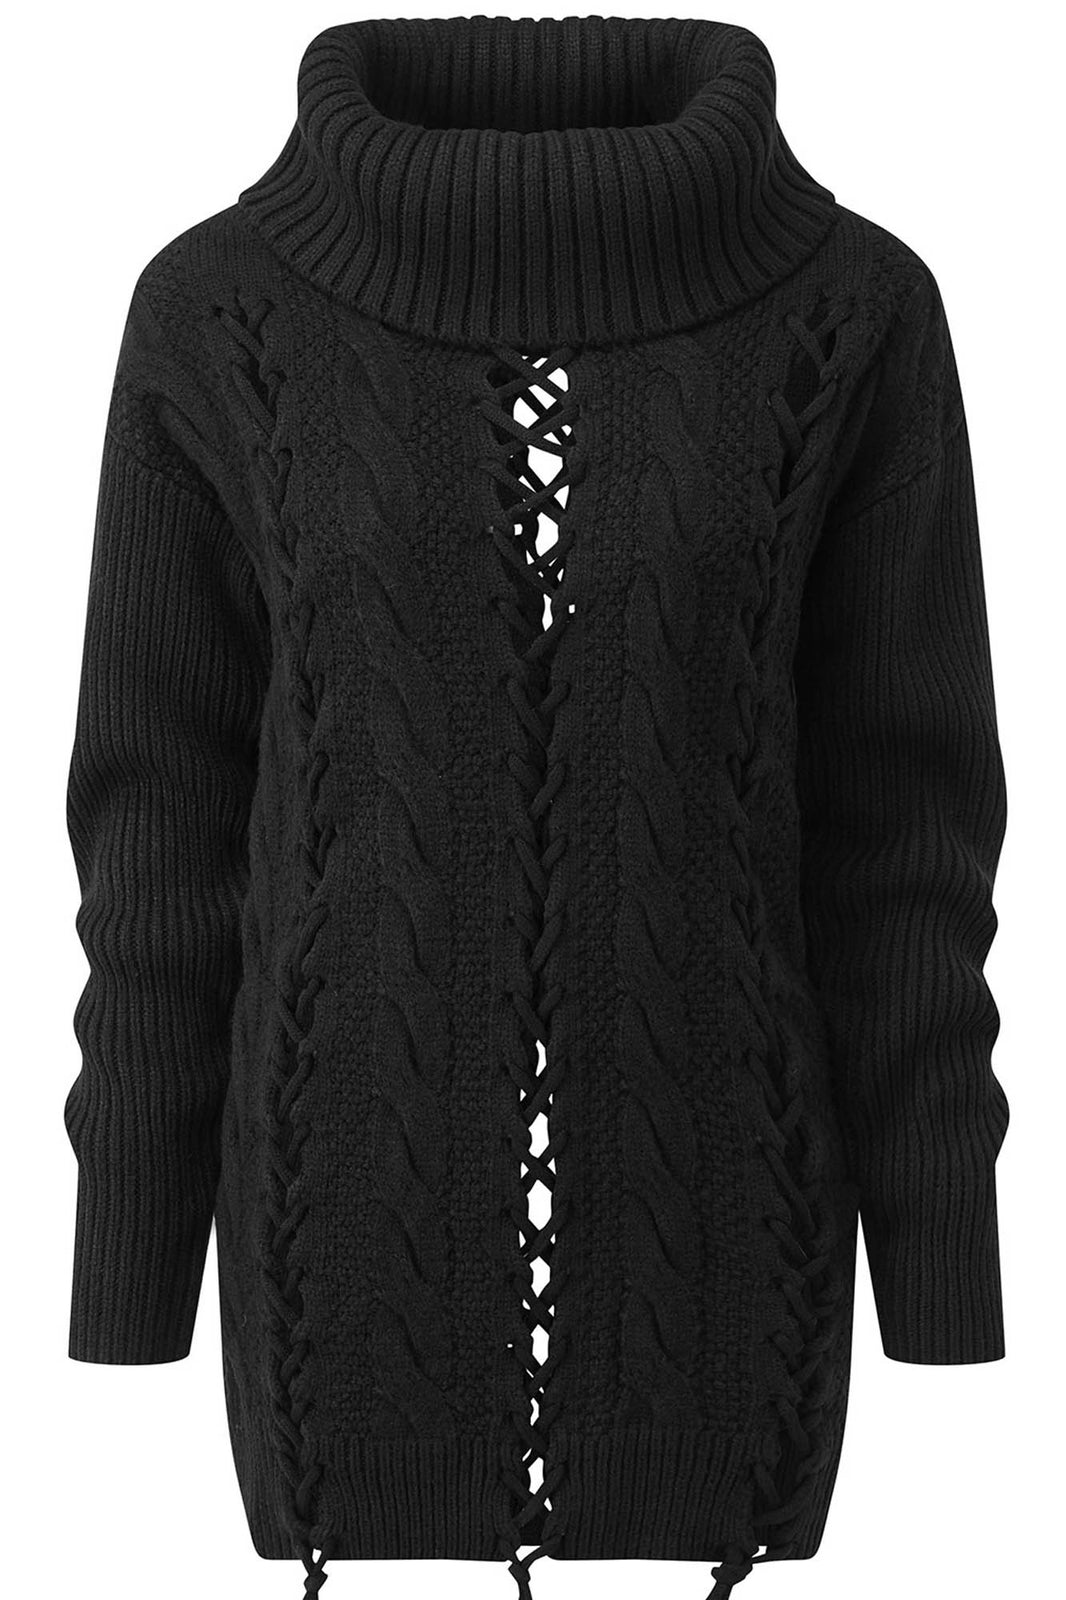 Zora Lace-Up Knit Sweater